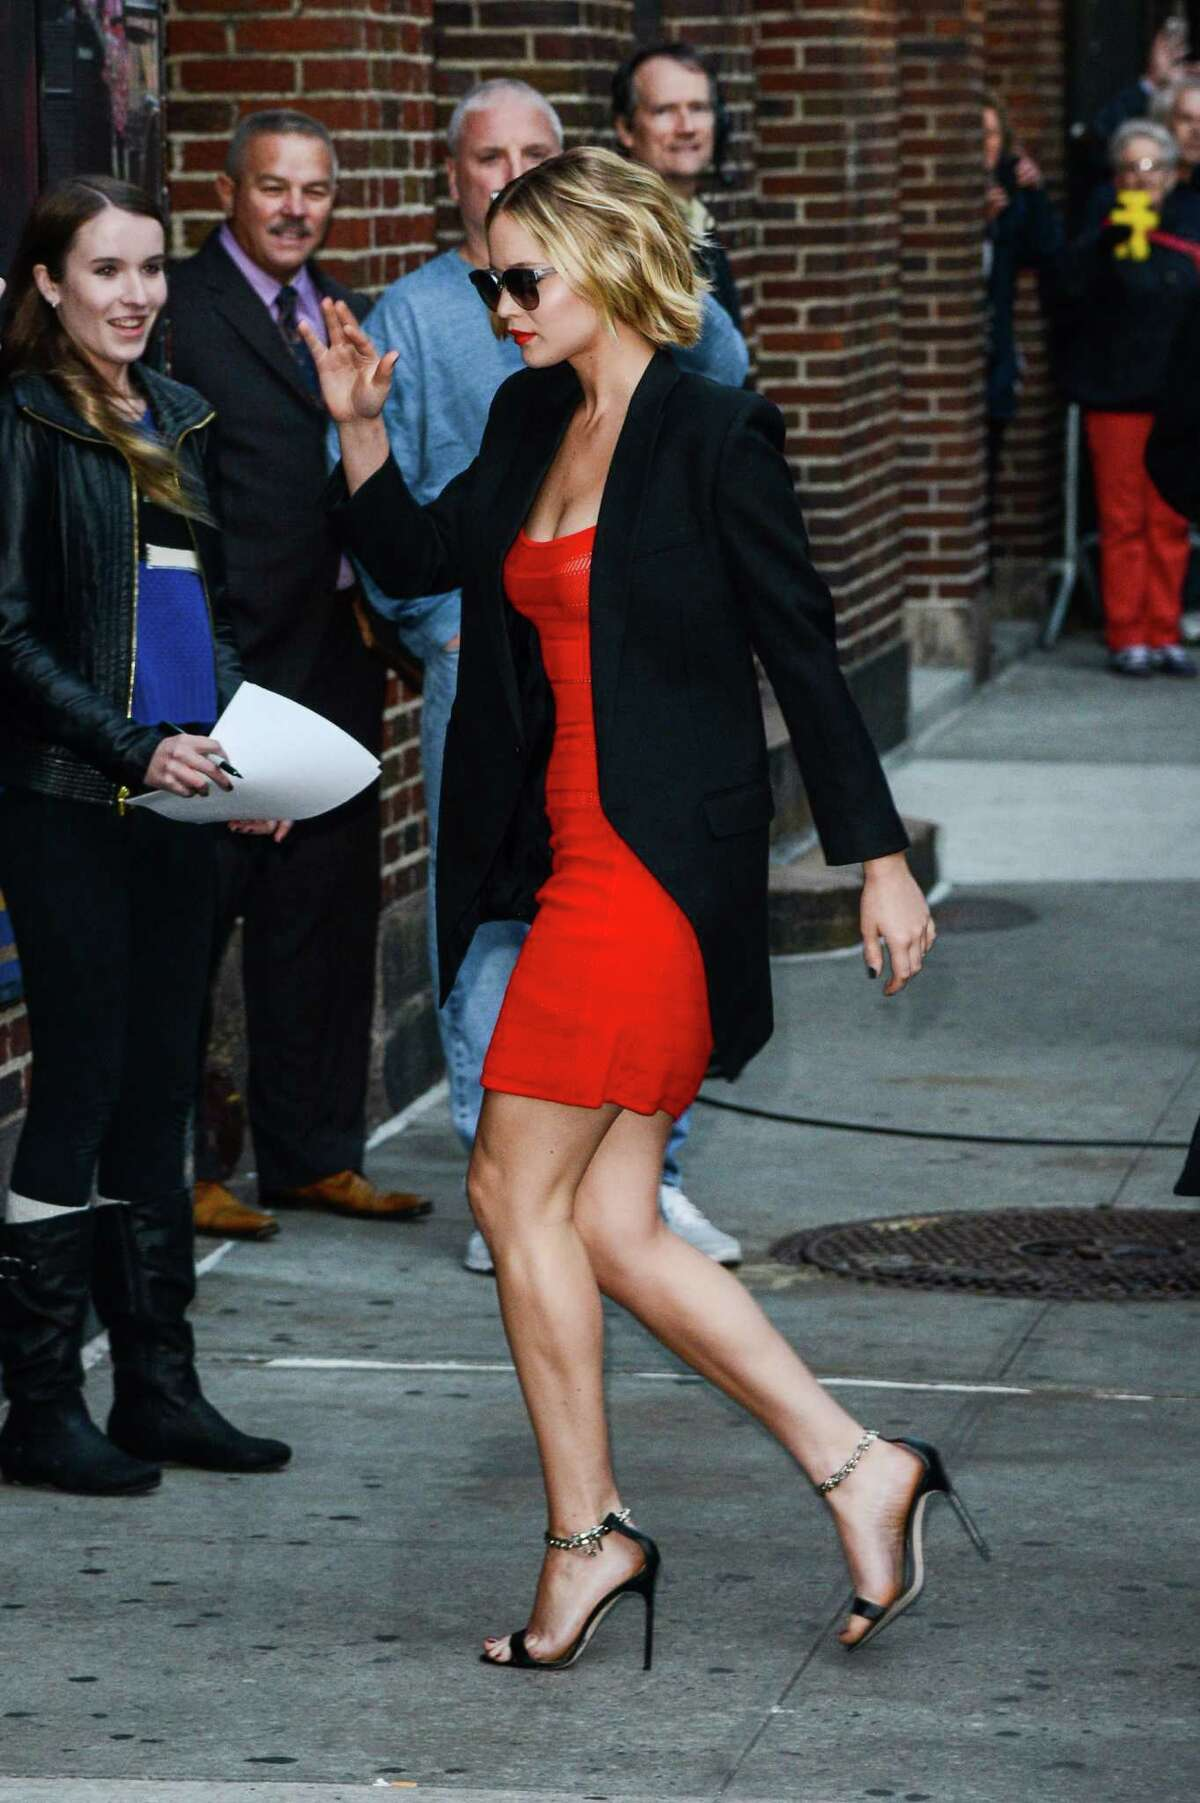 Actress Jennifer Lawrence enters the